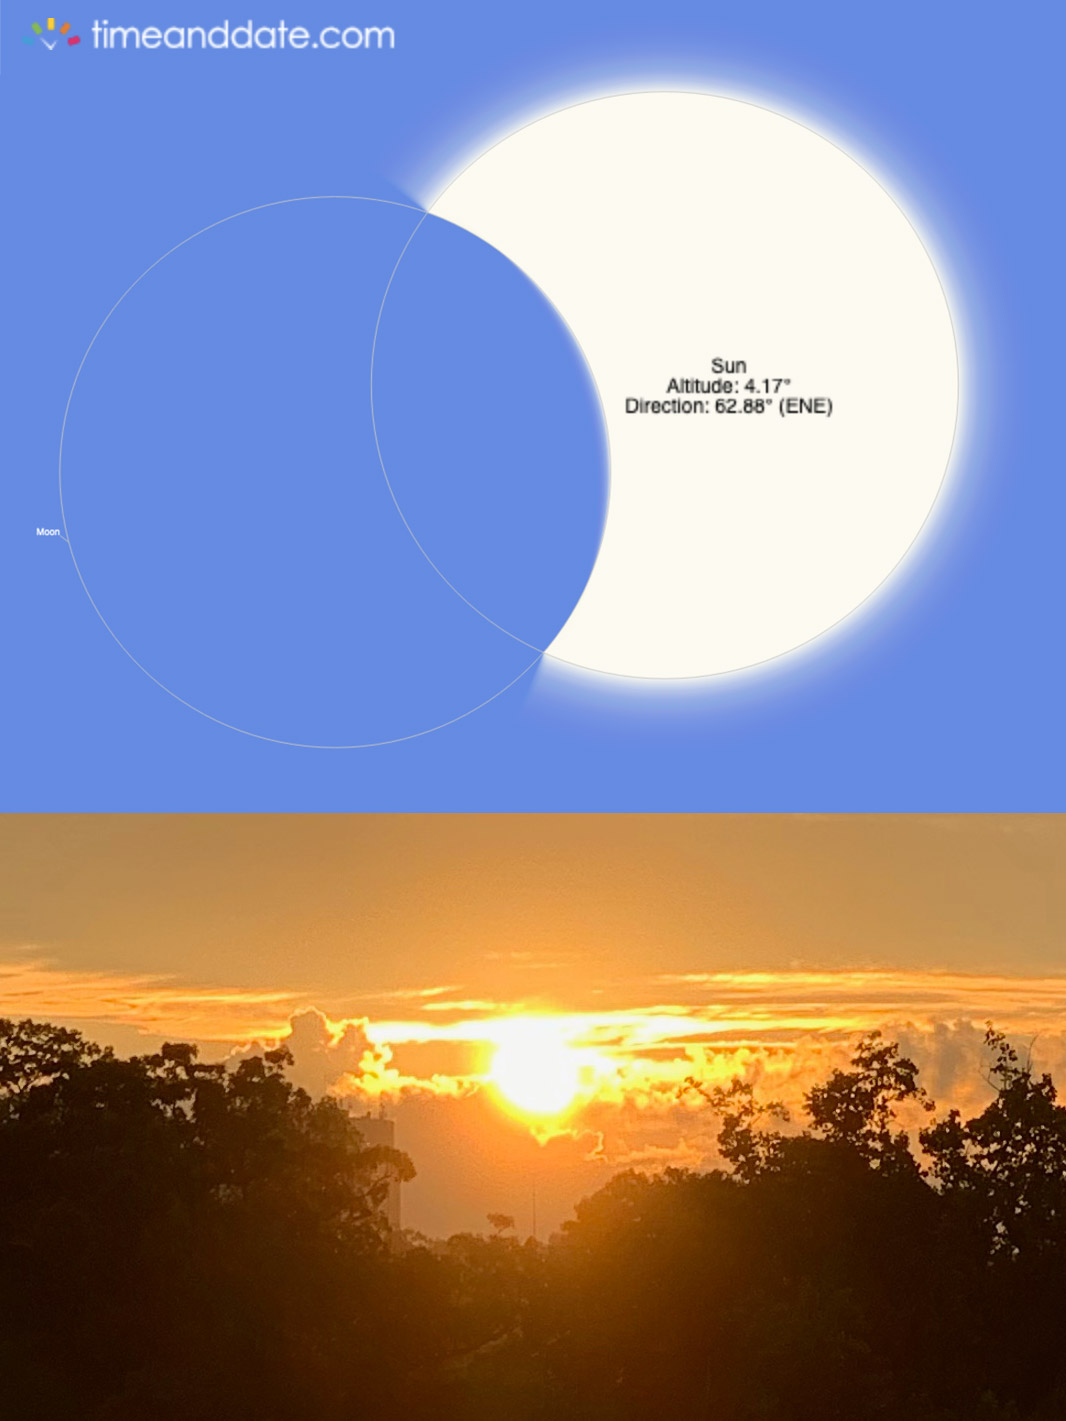 Partial Solar Eclipse - Thursday, June 10, 2021 - photo by Linda Schenk, graphic by TimeandDate.com